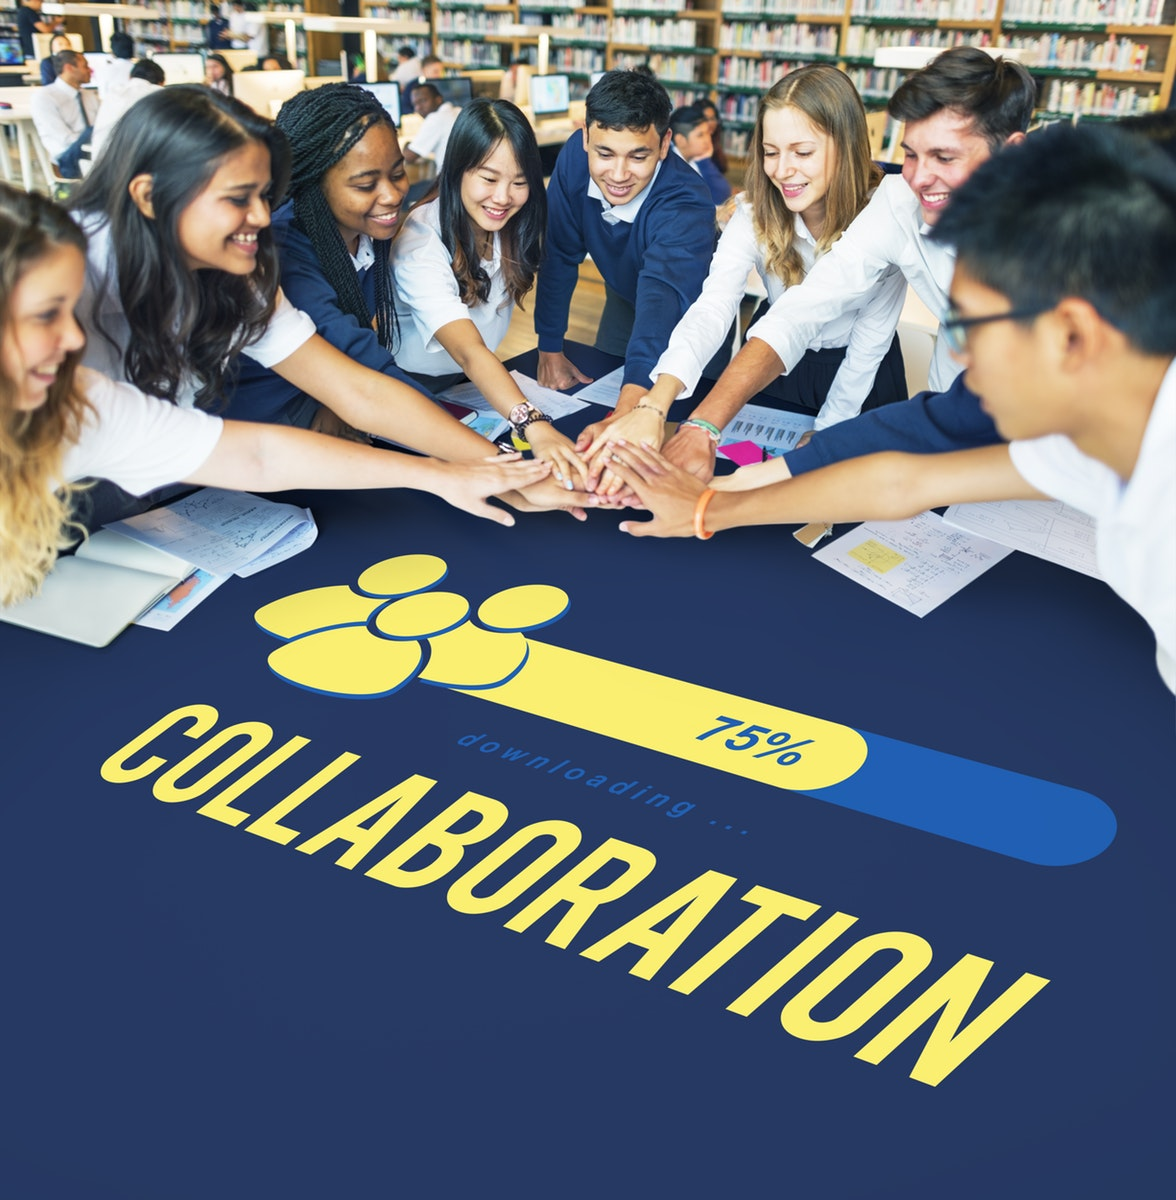 Focus on Collaboration to Help Students Succeed